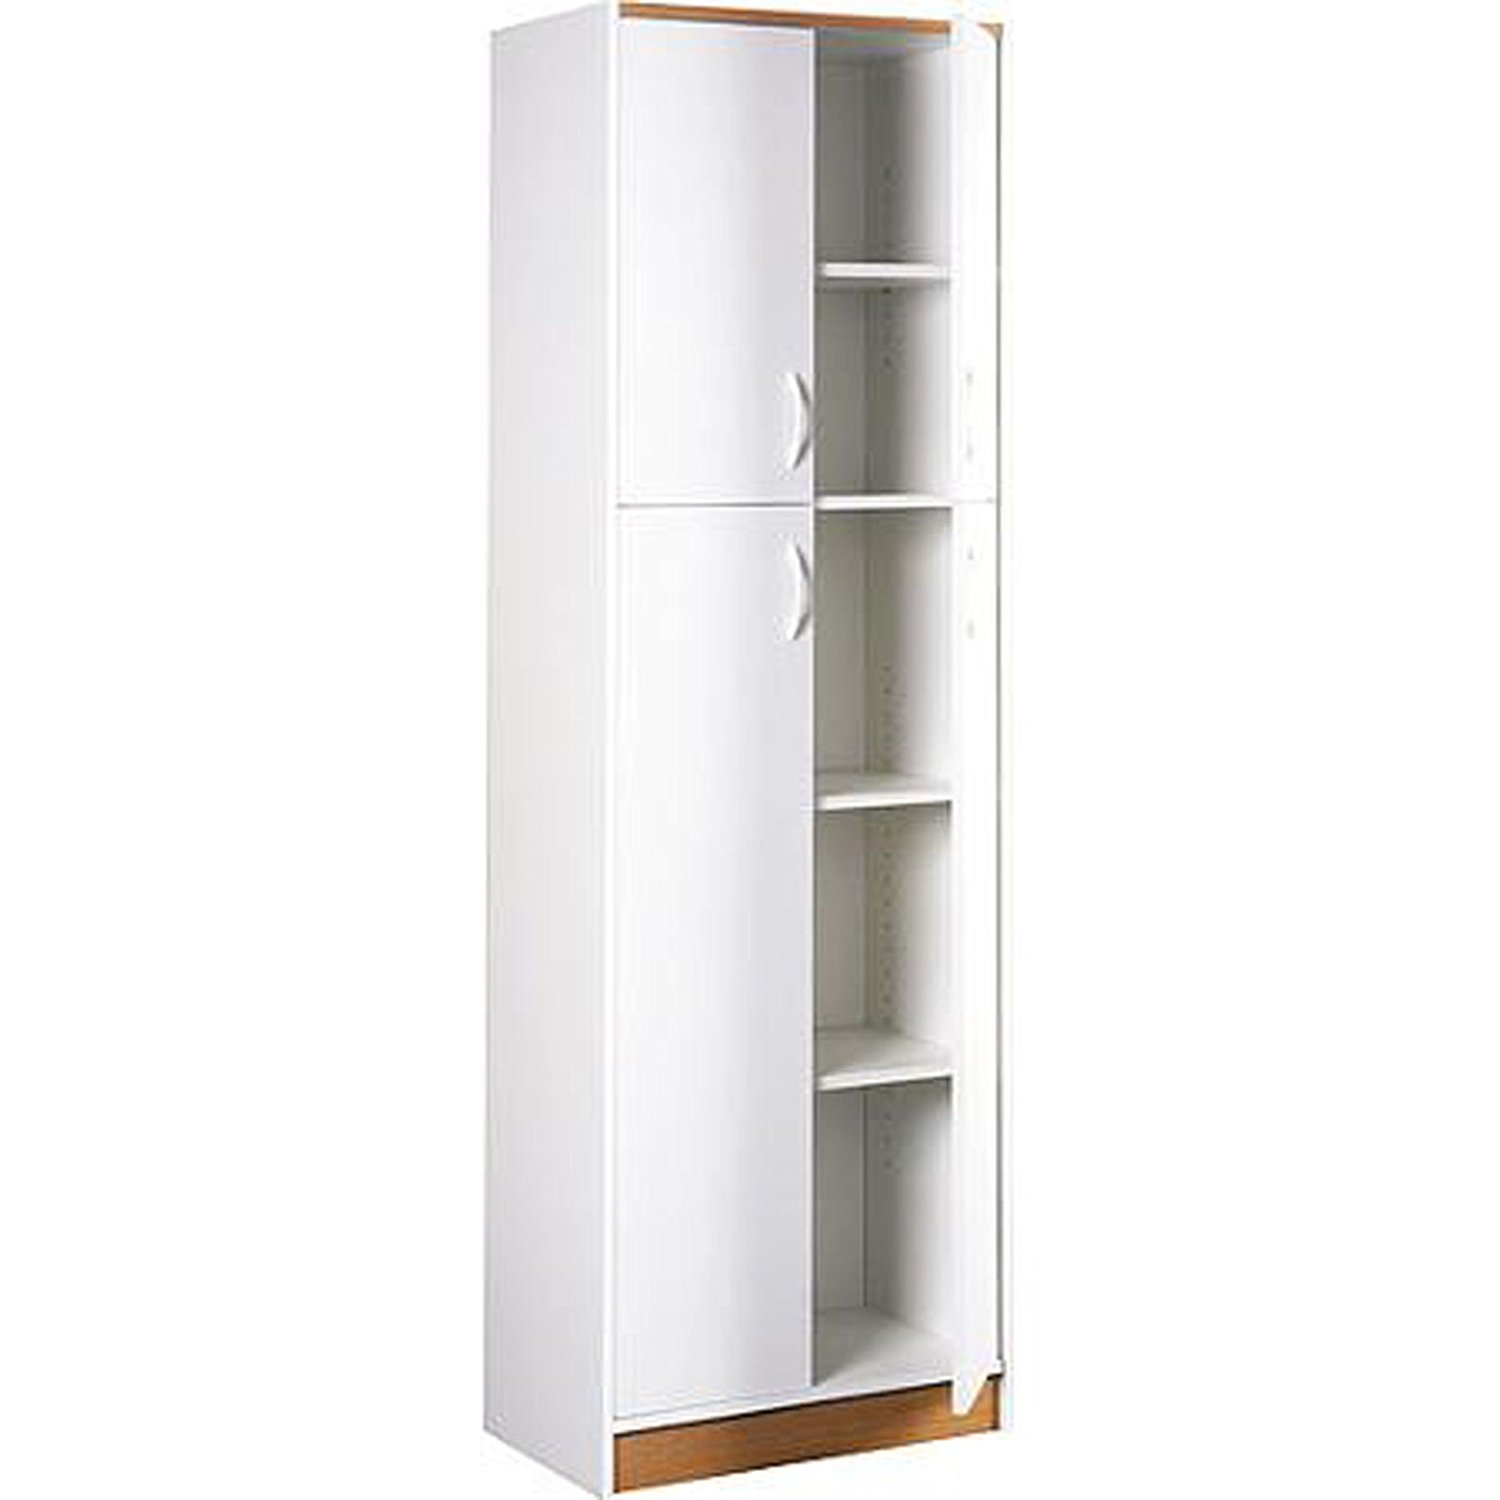 Get Quotations · Kitchen Pantry Storage Cabinet White 4 Door Wood Organizer  5 Shelves Furniture